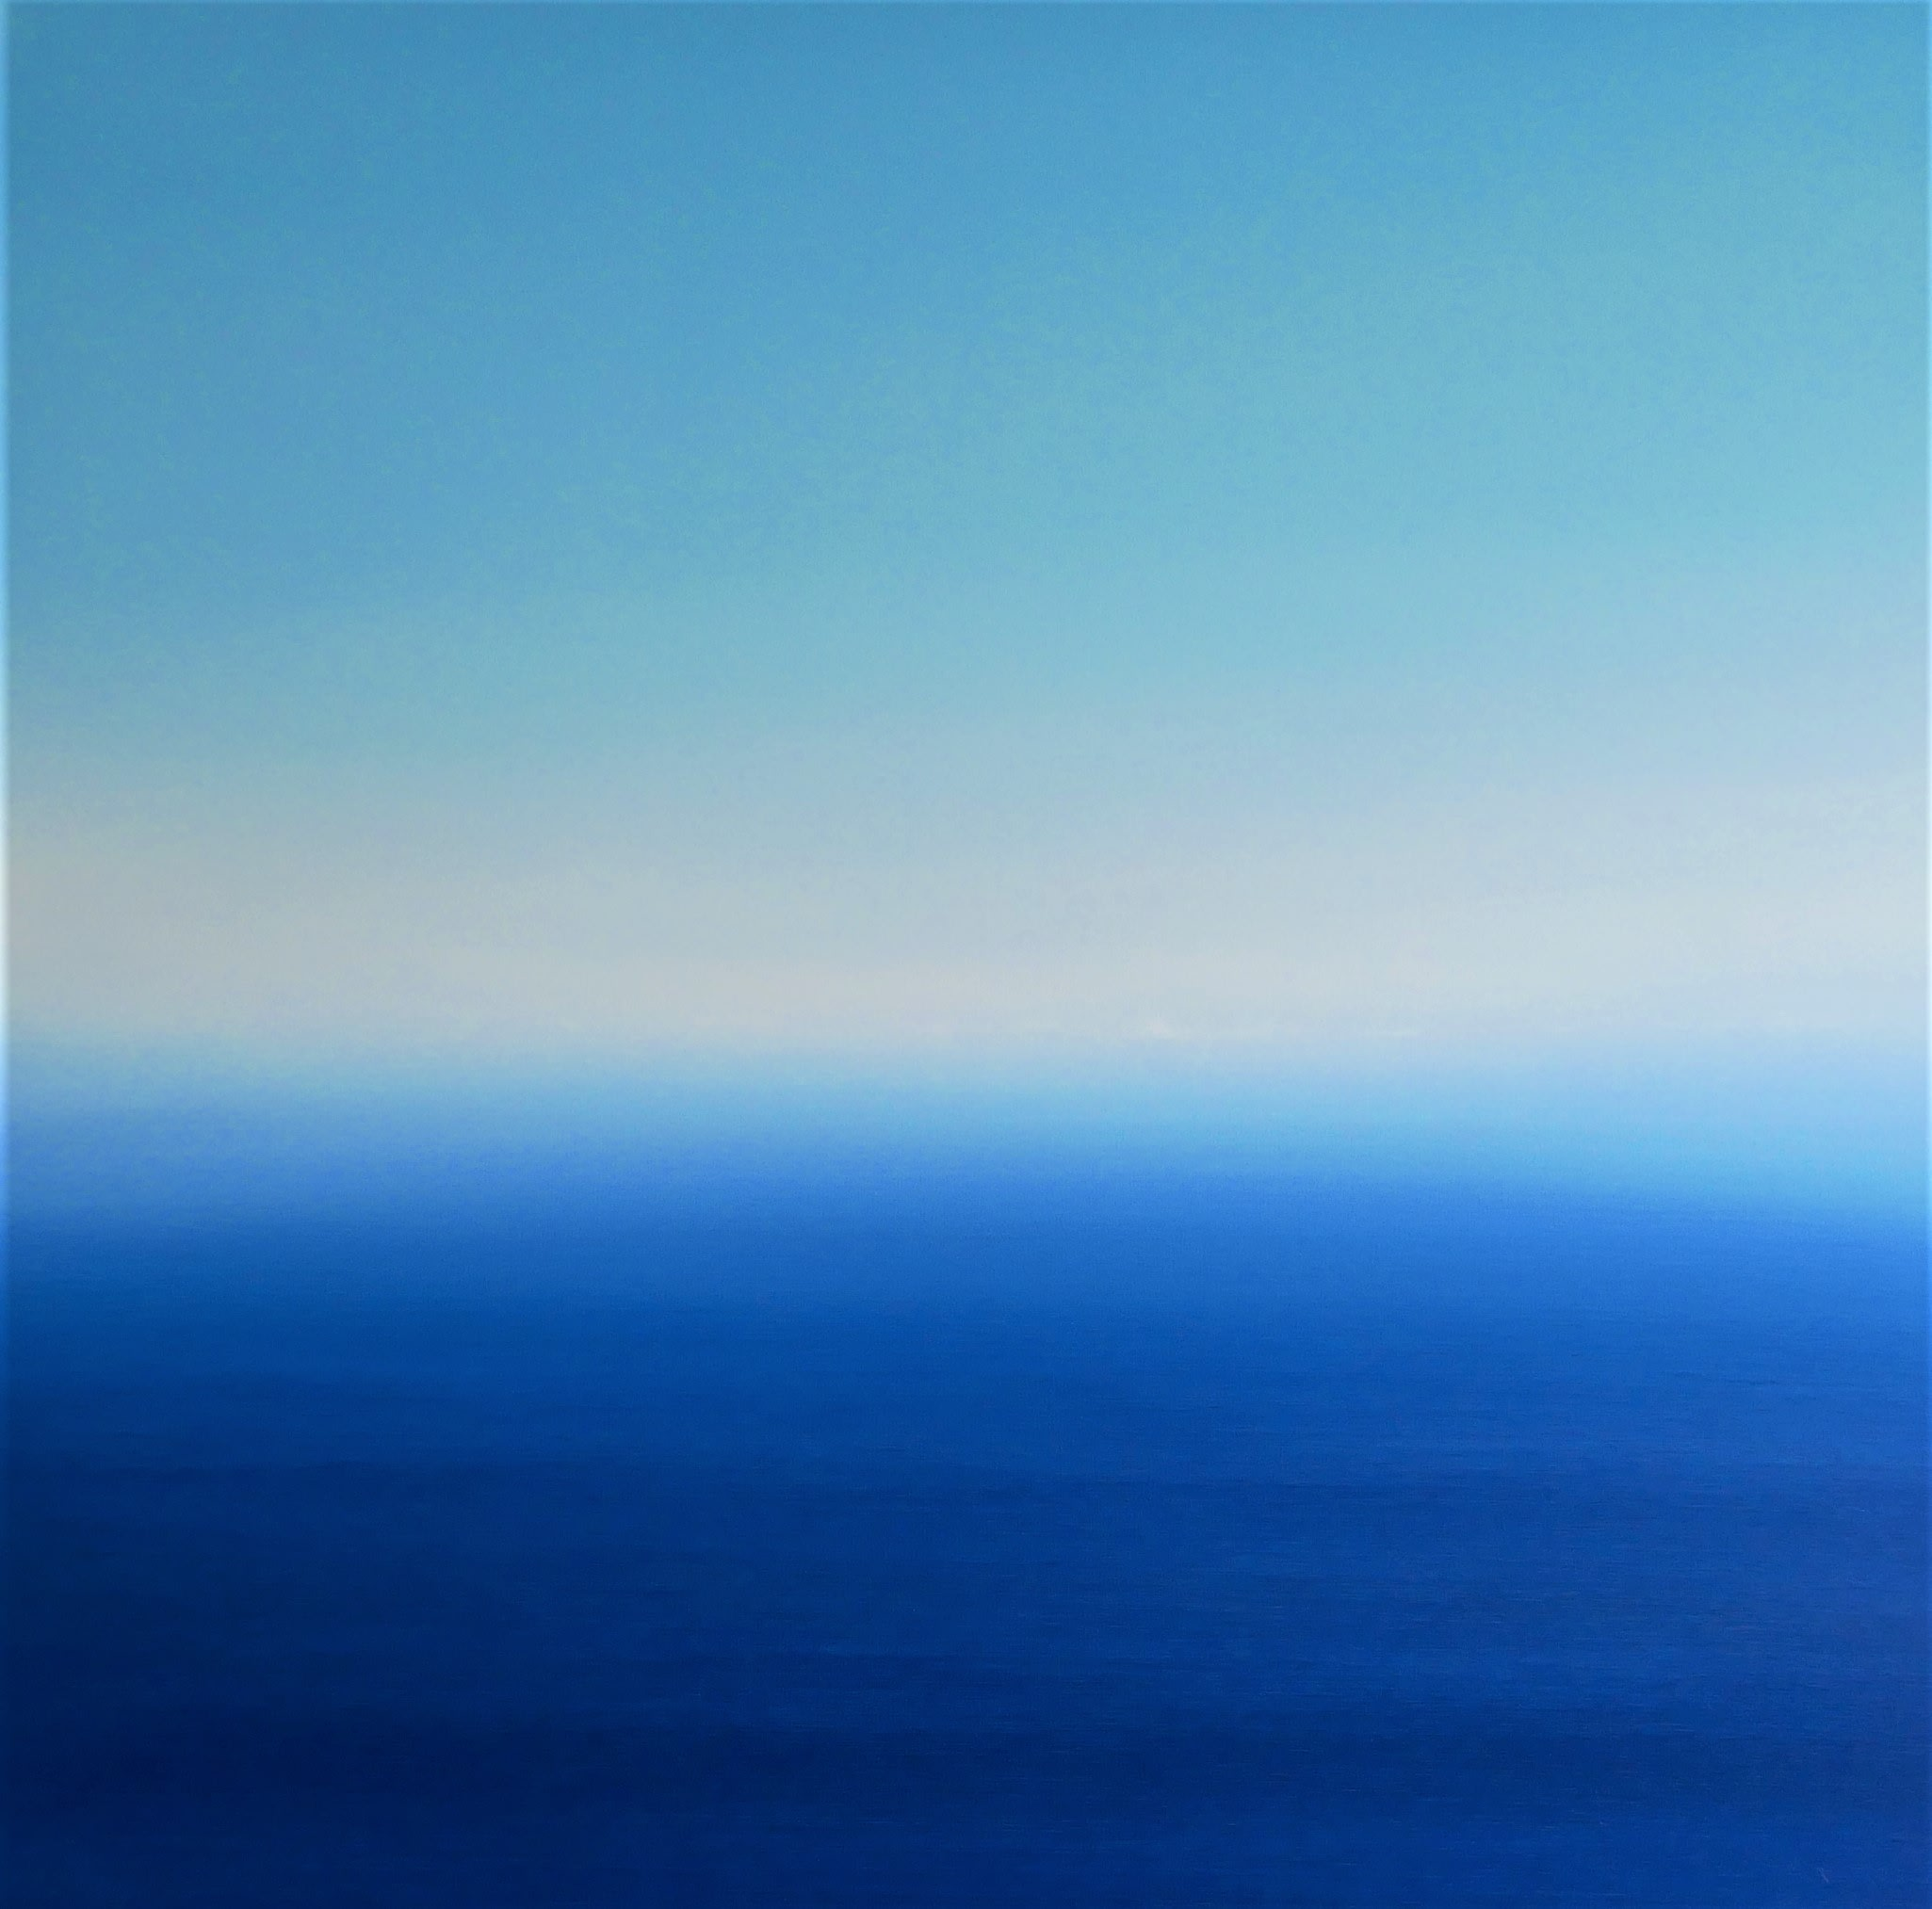 """<span class=""""link fancybox-details-link""""><a href=""""/artists/78-martyn-perryman/works/7398-martyn-perryman-summer-calm-st-ives-bay-2021/"""">View Detail Page</a></span><div class=""""artist""""><strong>Martyn Perryman</strong></div> b. 1963 <div class=""""title""""><em>Summer Calm St Ives Bay </em>, 2021</div> <div class=""""medium"""">oil on canvas</div> <div class=""""dimensions"""">h. 100 x w. 100 cm </div><div class=""""copyright_line"""">Ownart: £140 x 10 Months, 0% APR</div>"""